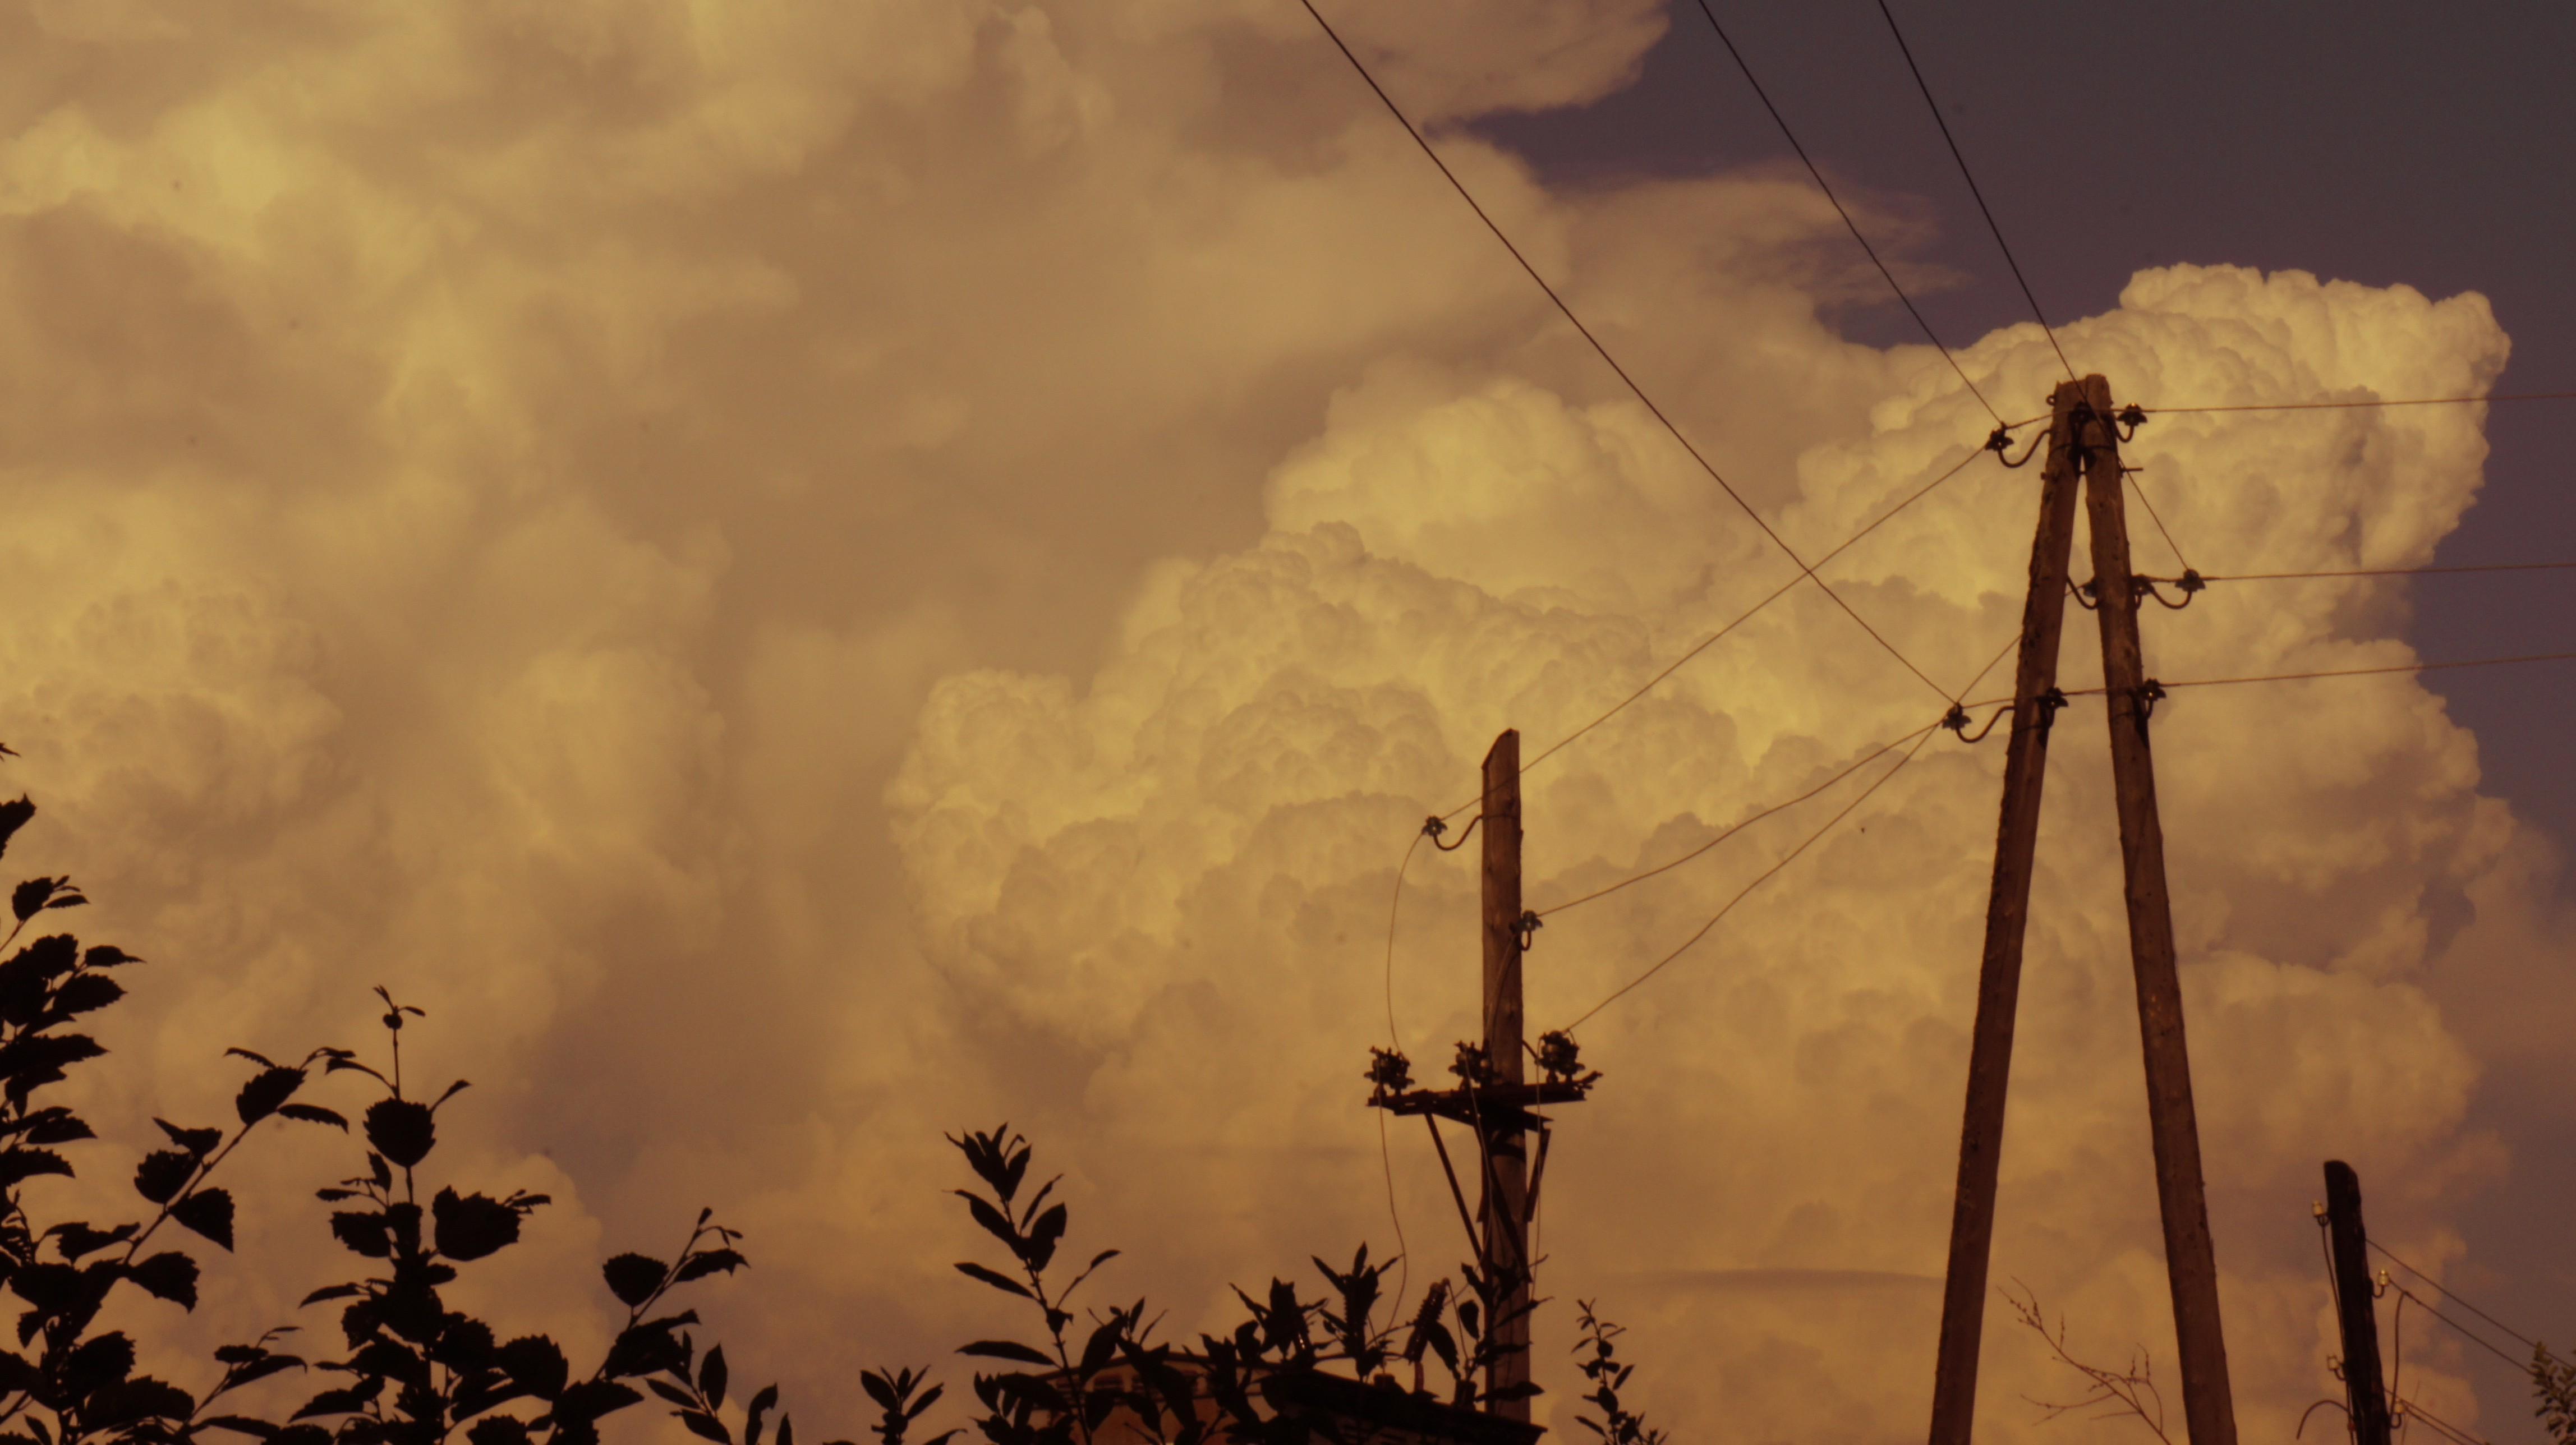 clouds wires transmission line HD Wallpaper